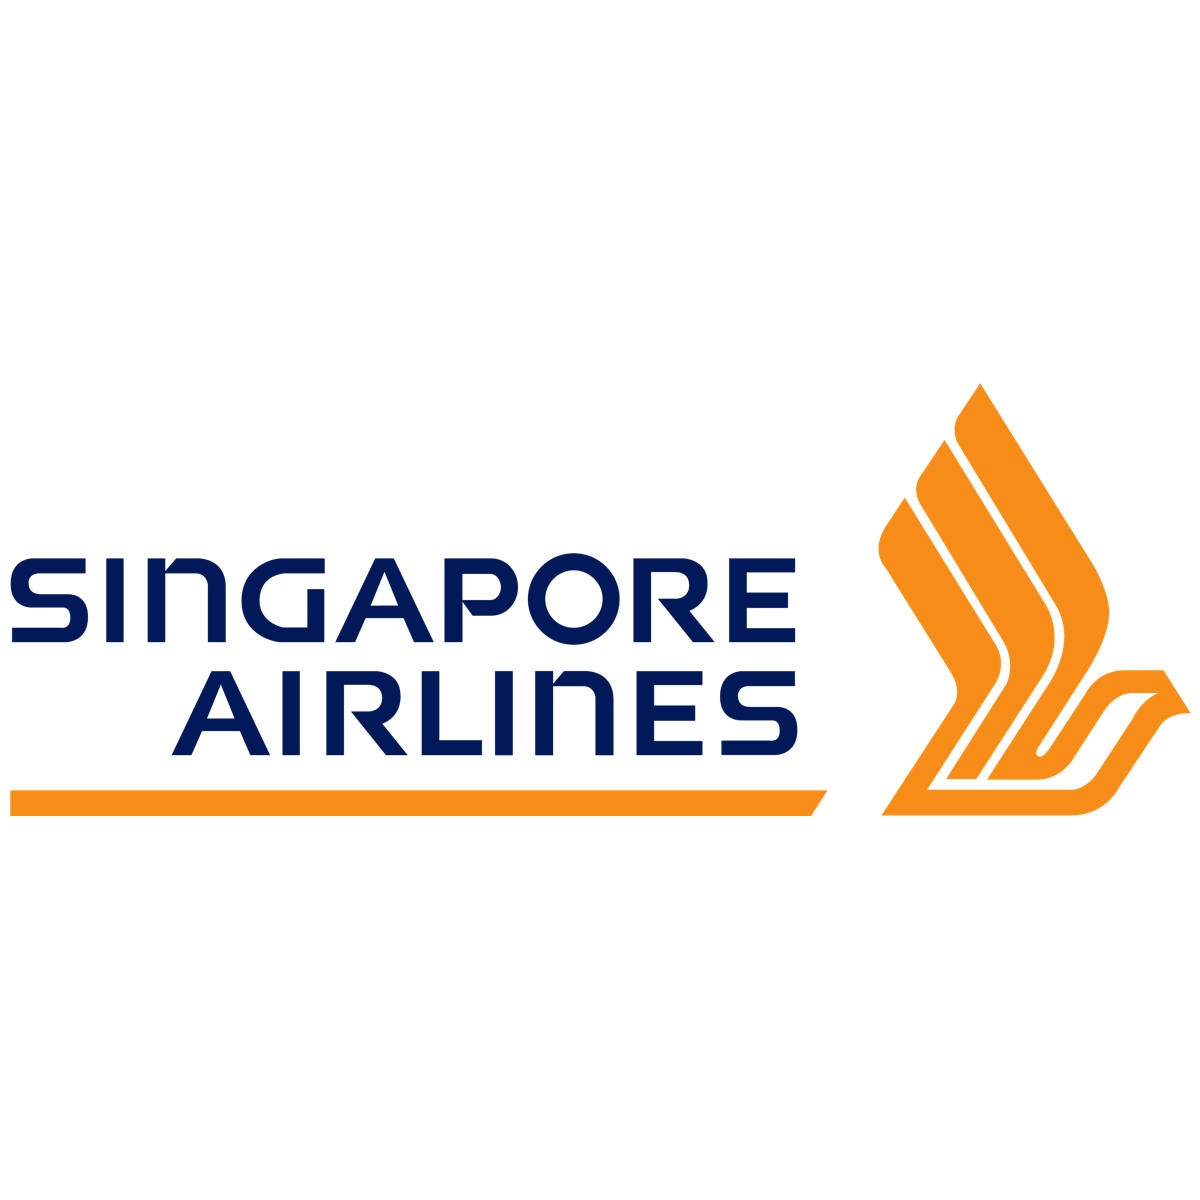 Singapore Airlines - OCBC Investment 2017-02-09: 3QFY17 lifted by cheaper fuel